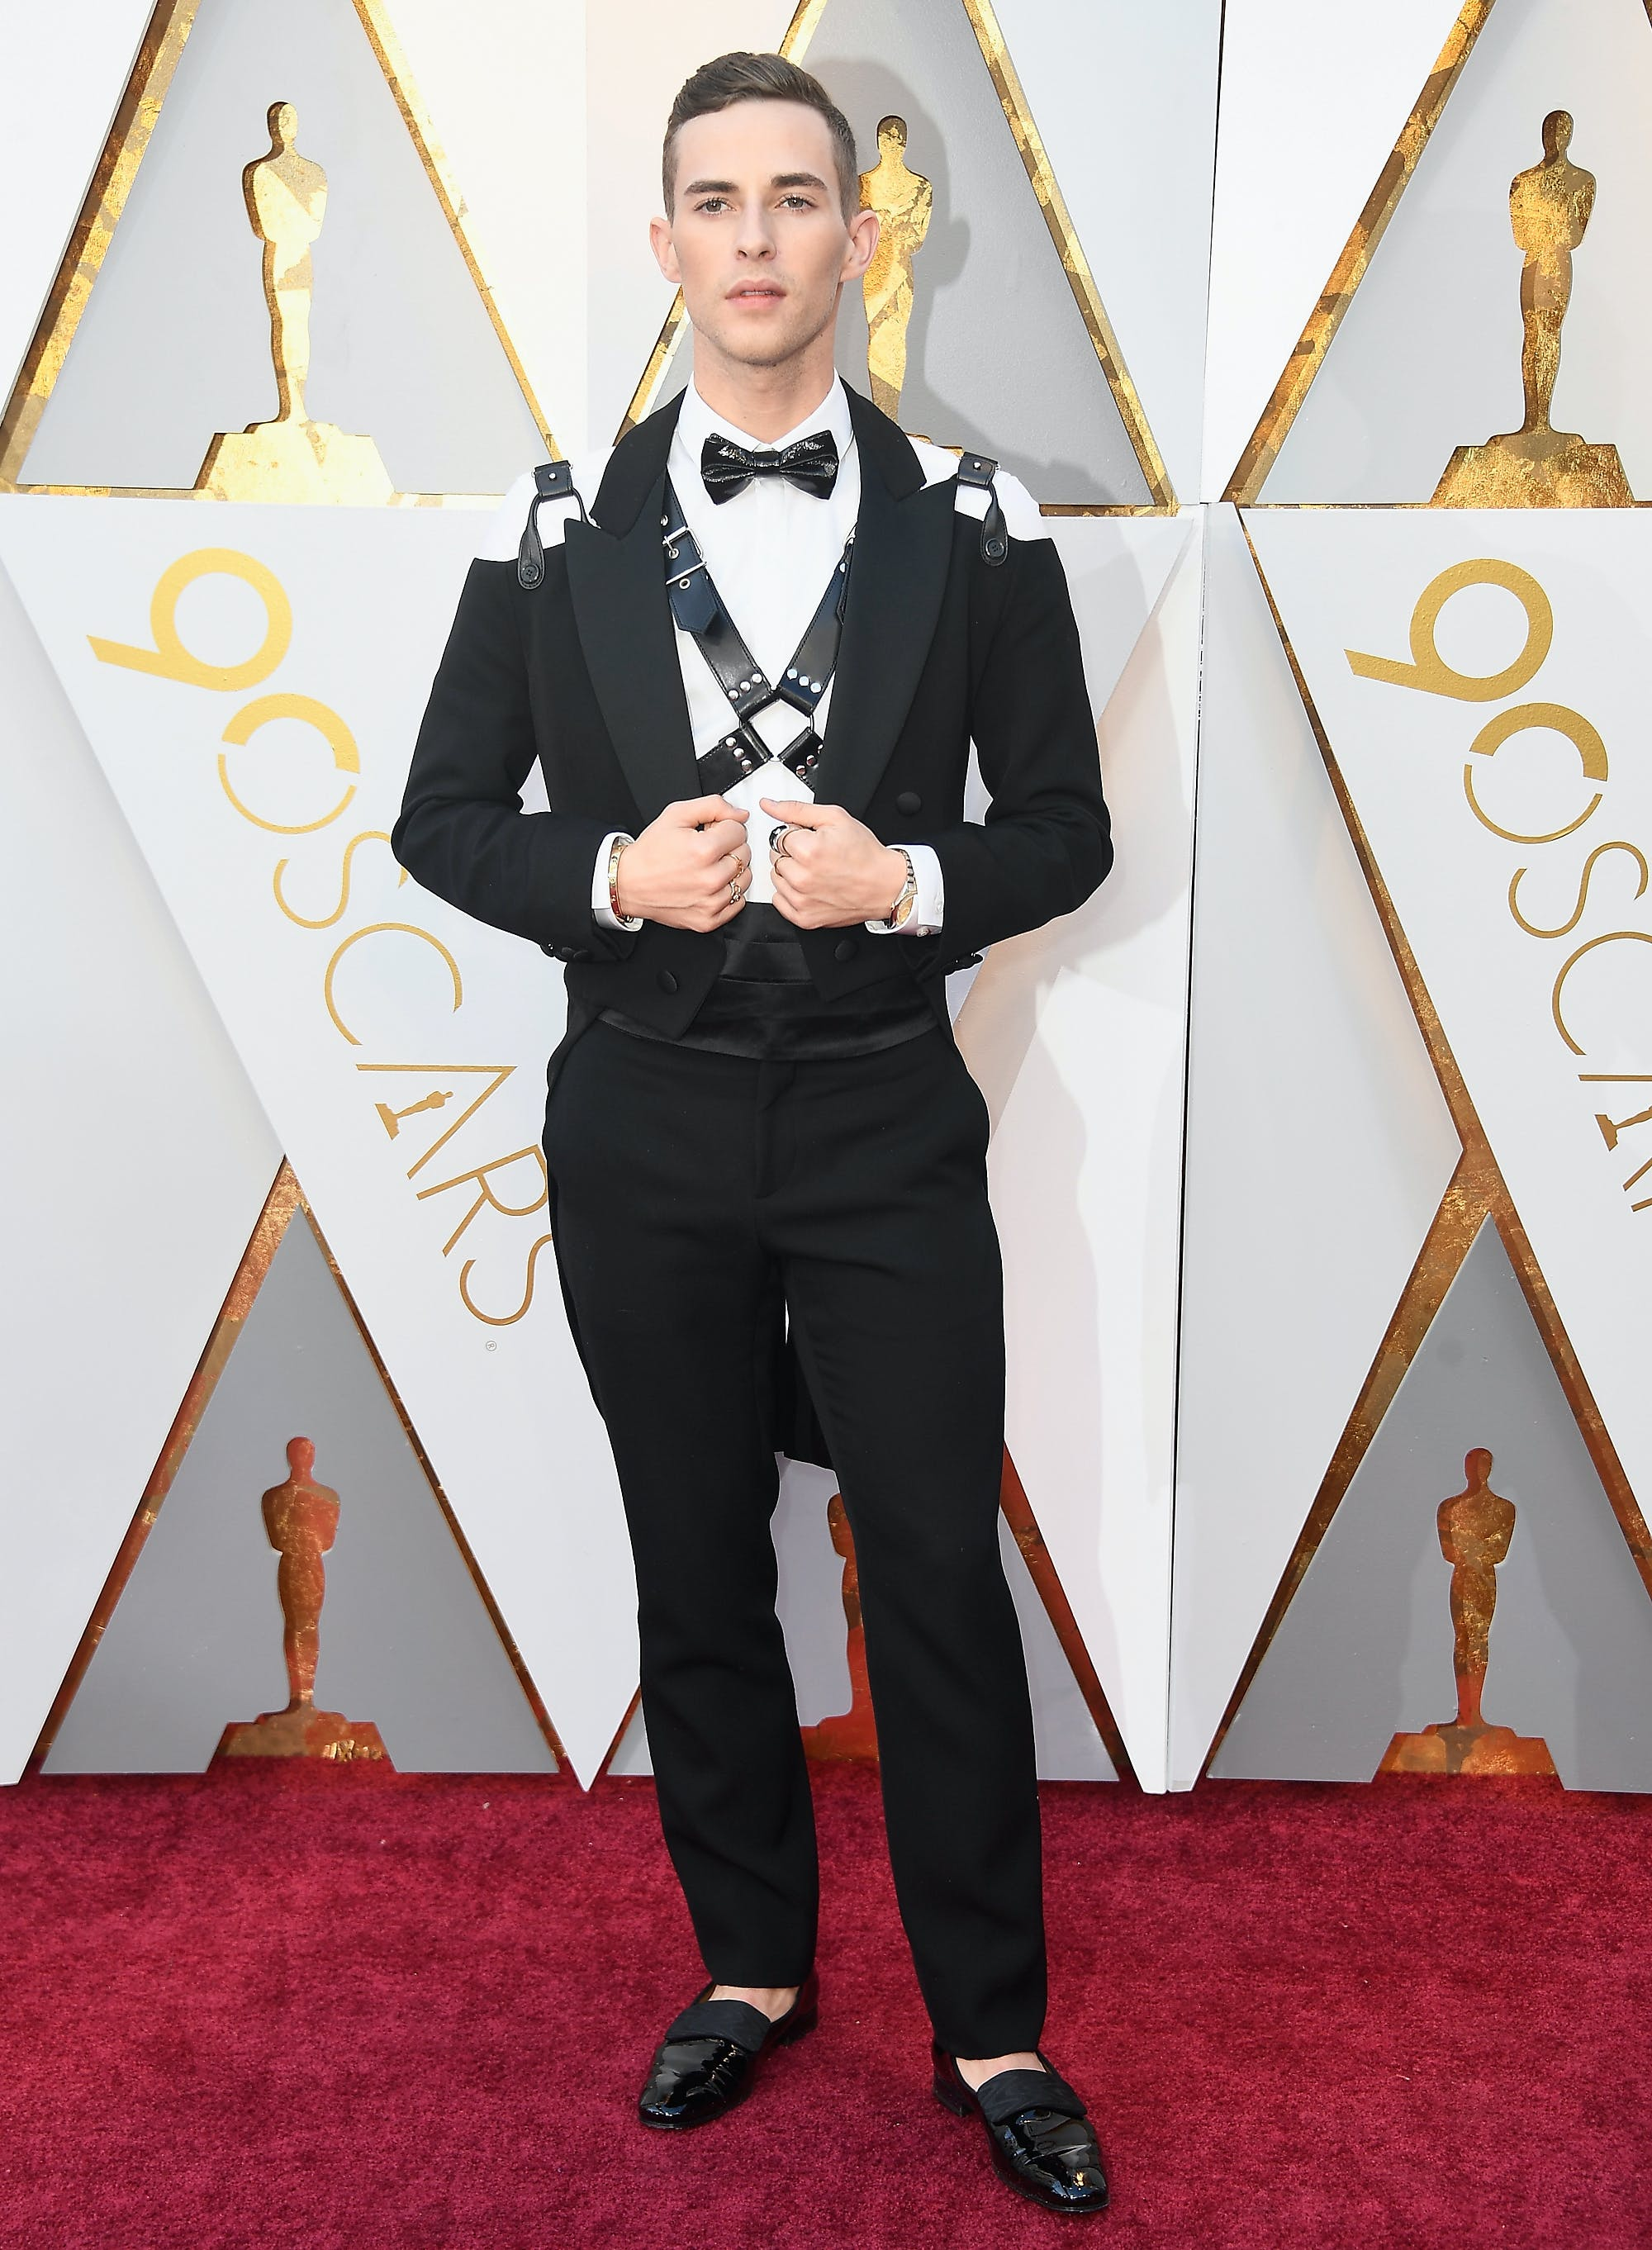 Adam Rippon at the 2018 Oscars